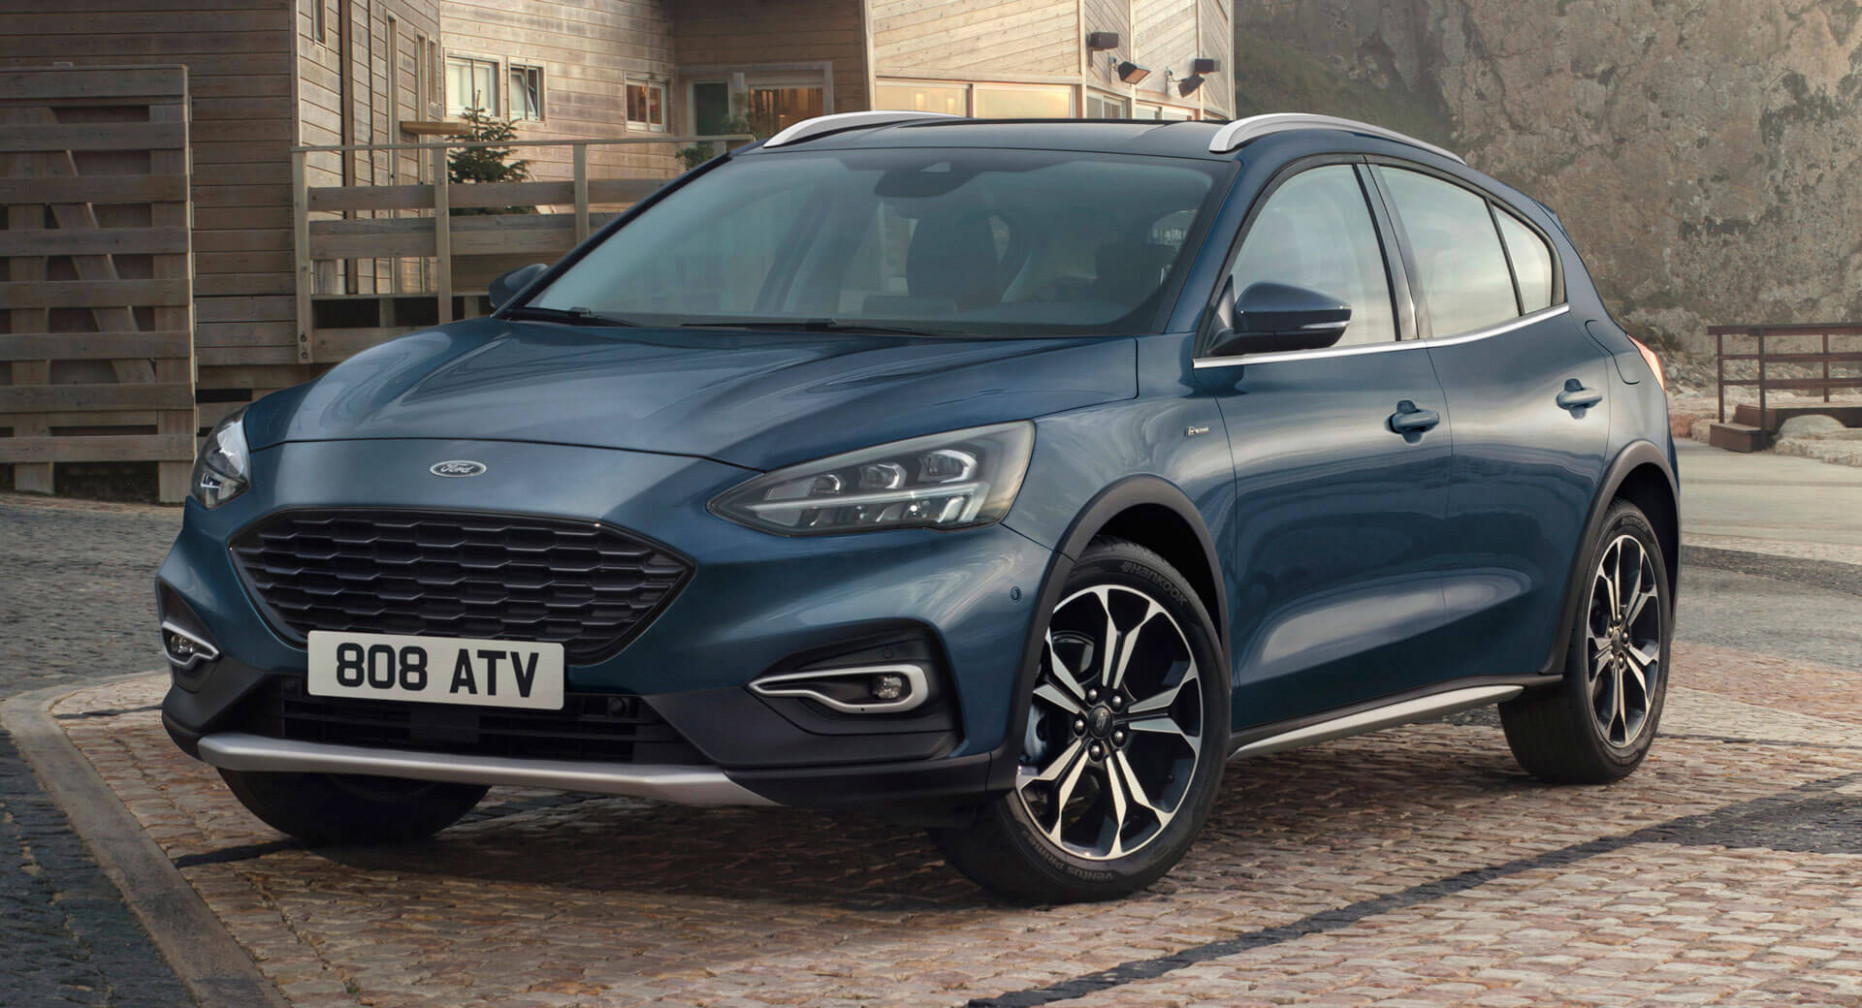 8 Ford Focus Active X Tries An Upmarket Approach With New ...